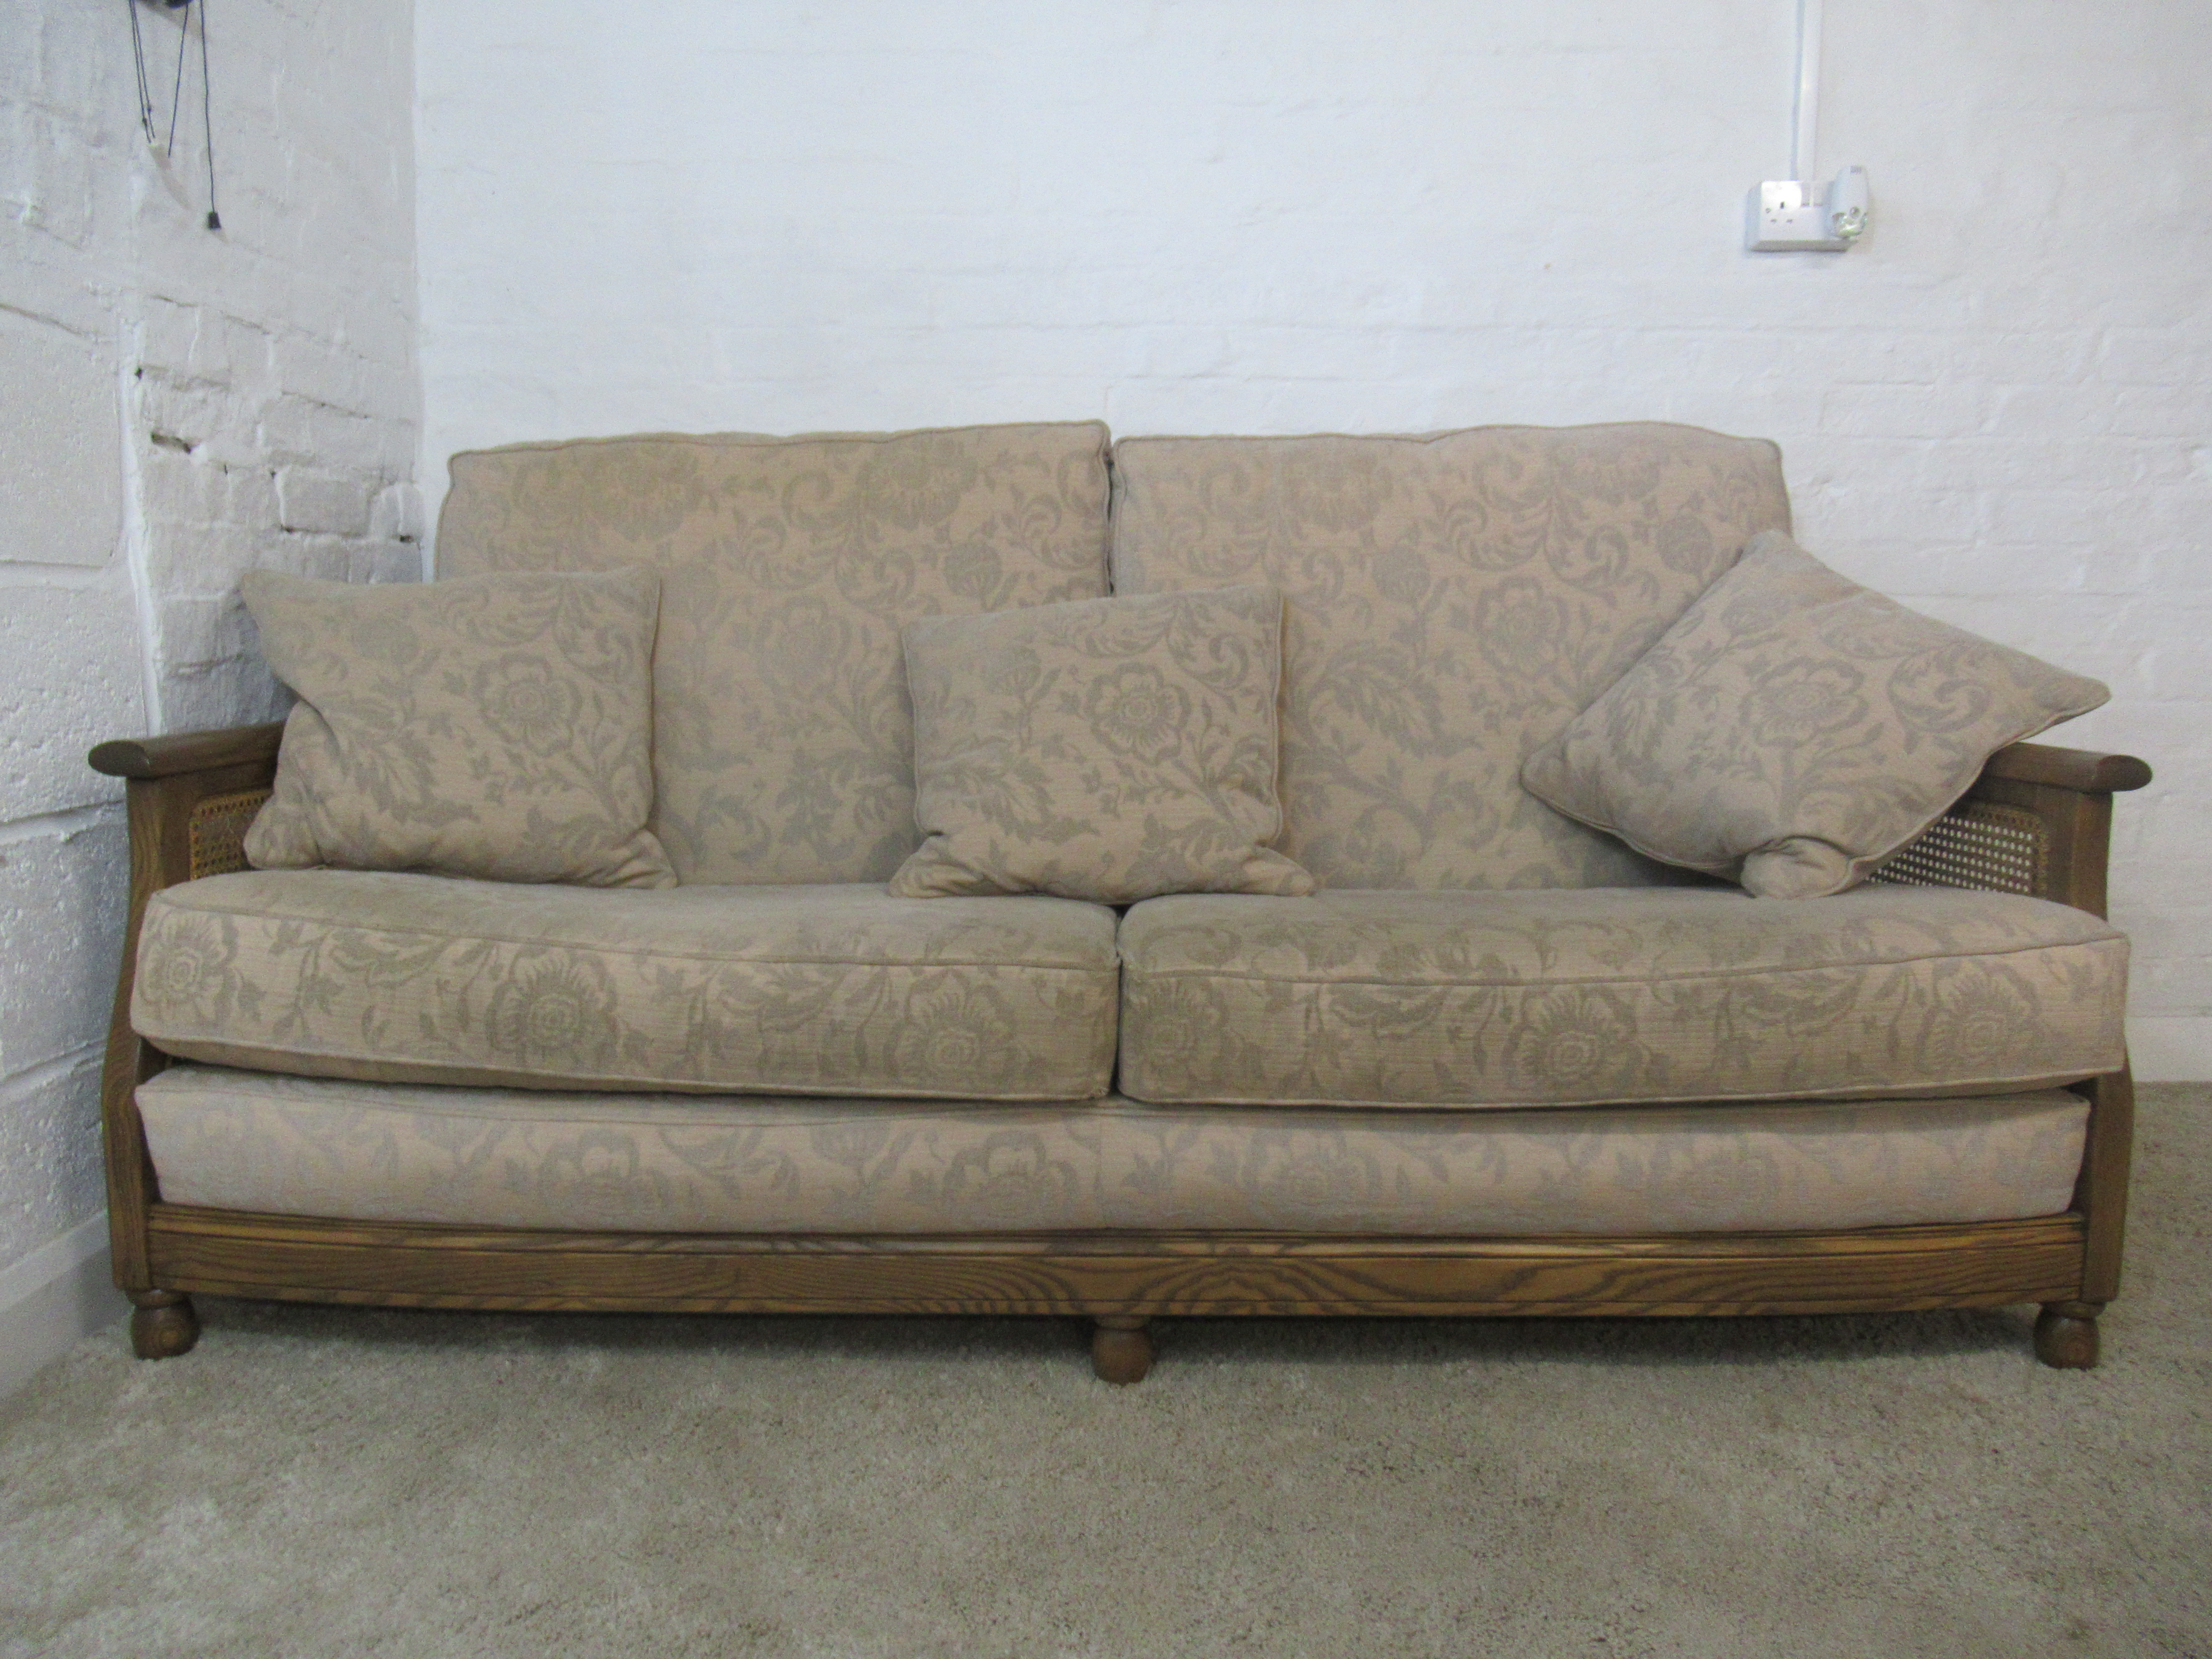 Ercol Bergere Golden Dawn Finish Solid Ash Three Seater Sofa With